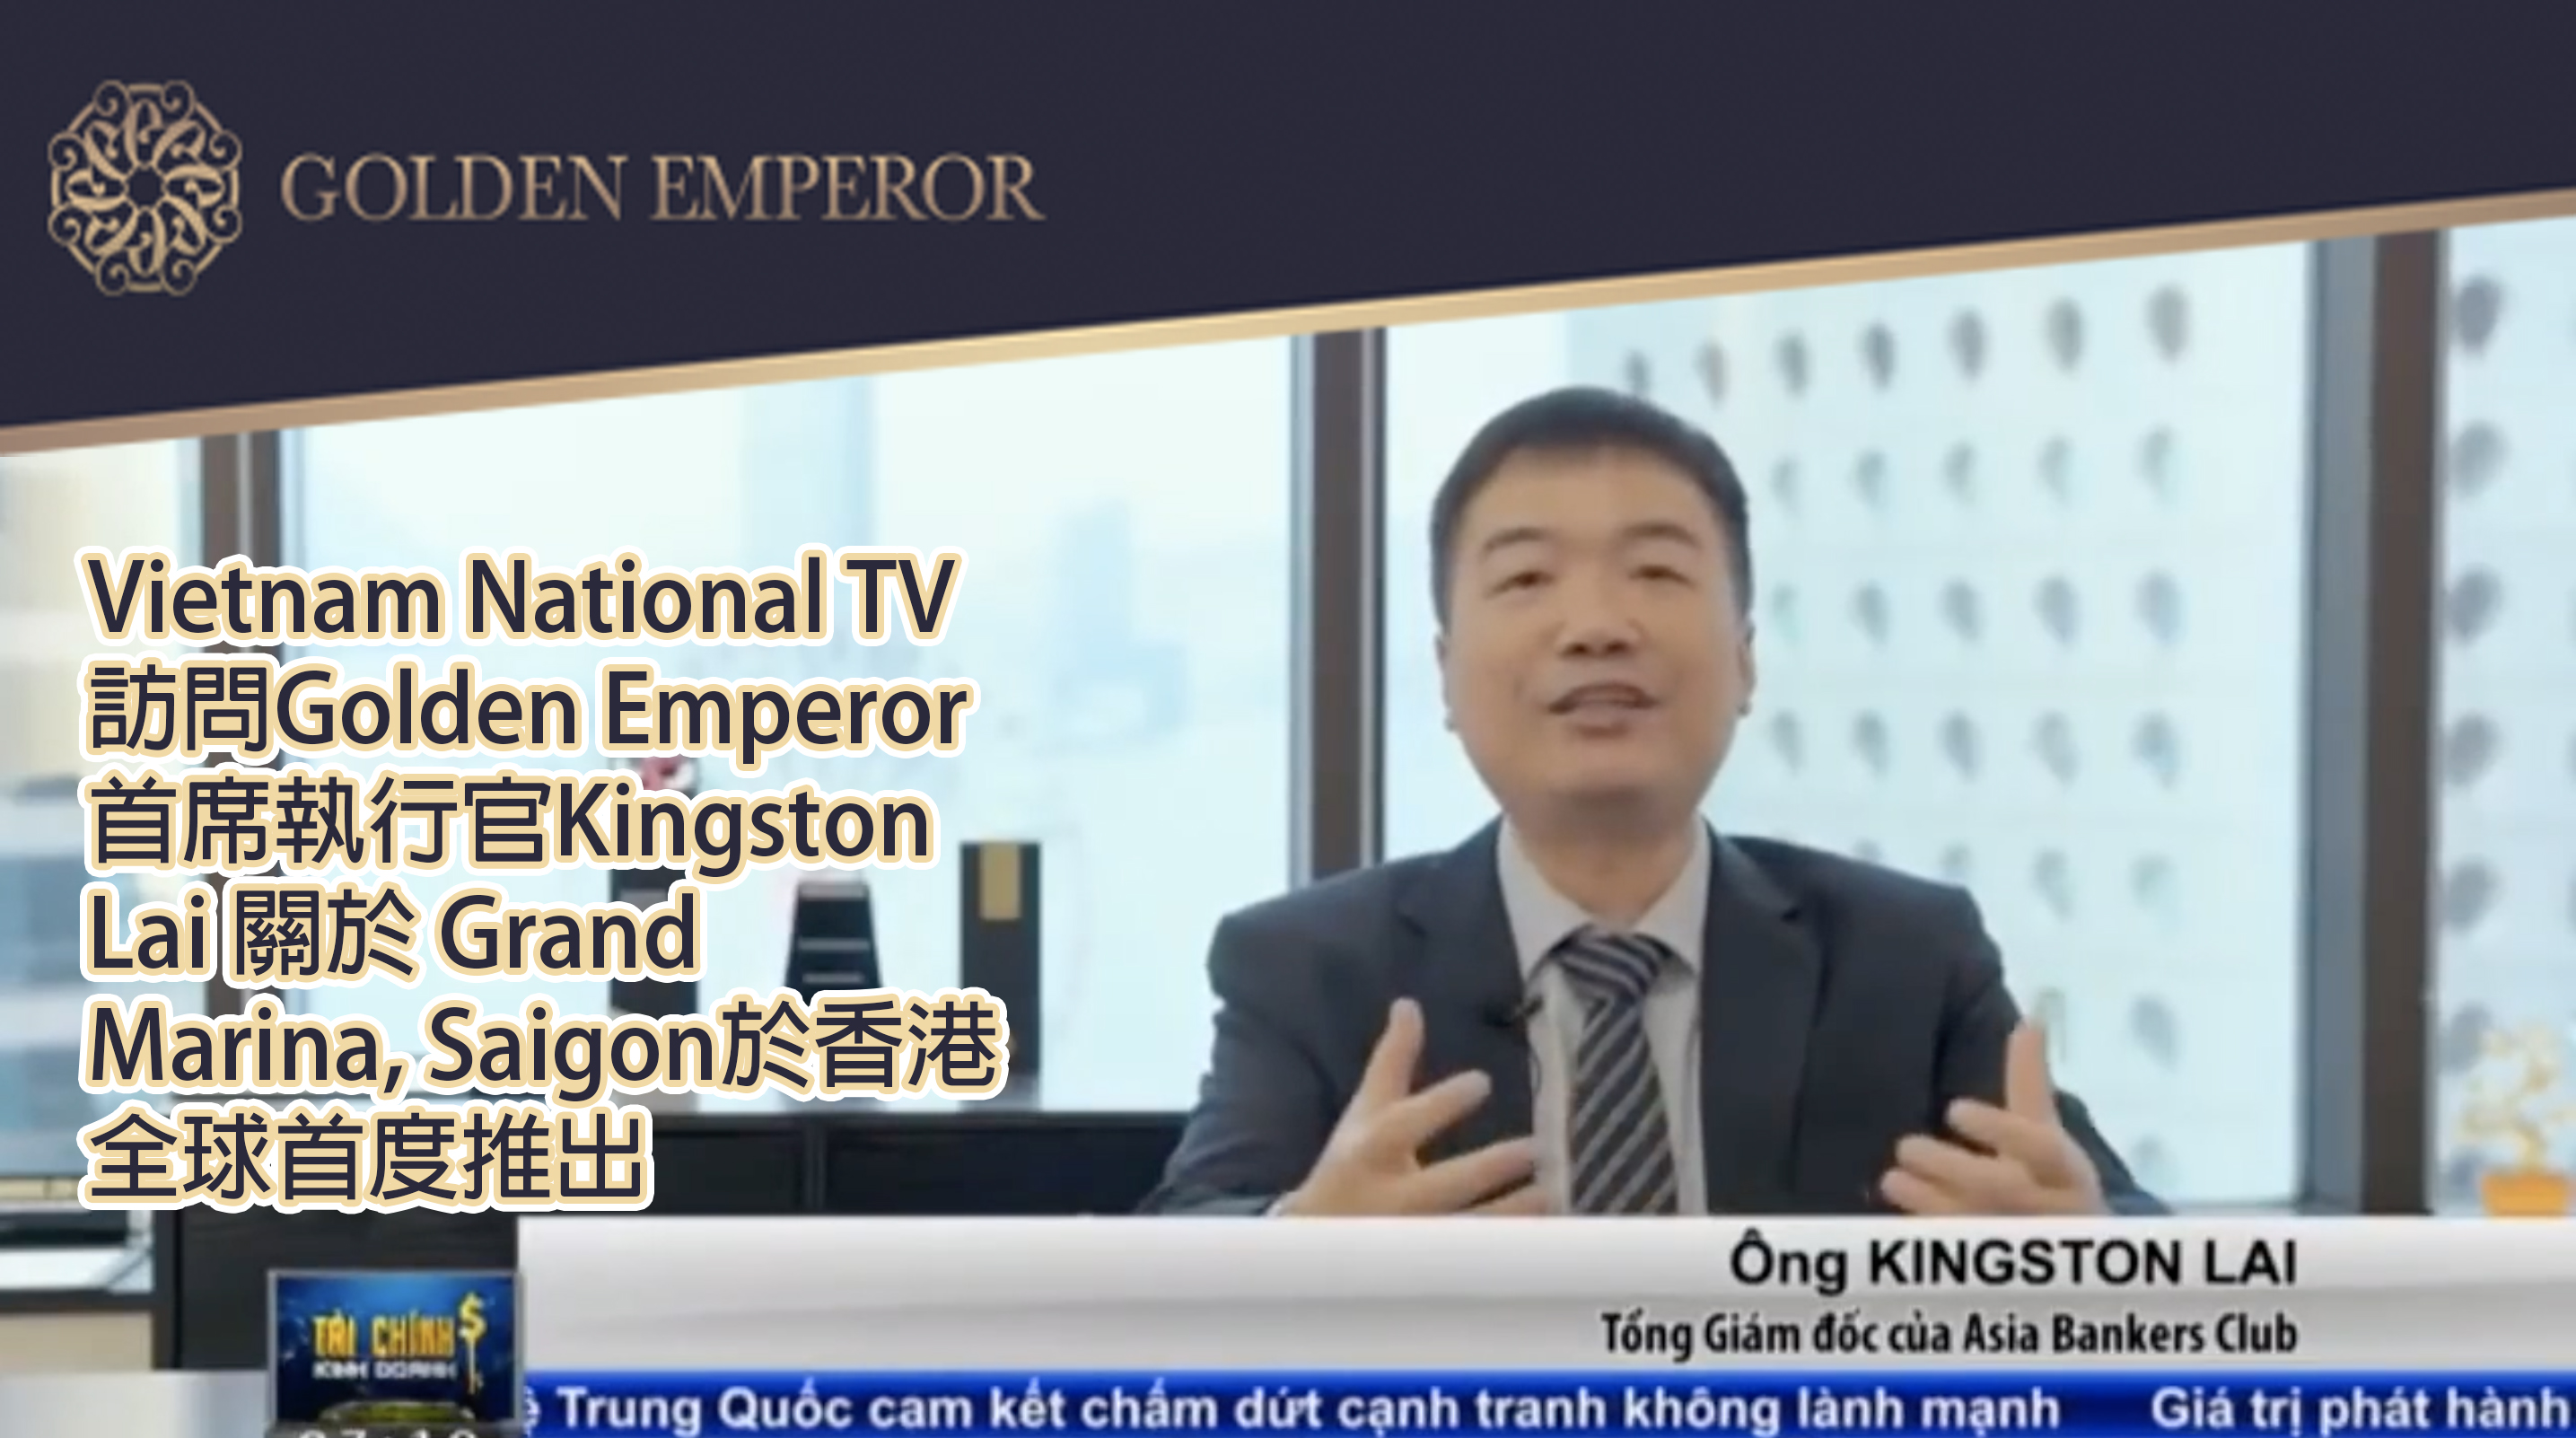 Vietnam National TV訪問Golden Emperor 首席執行官Kingston Lai關於 Grand Marina, Saigon於香港全球首度推出